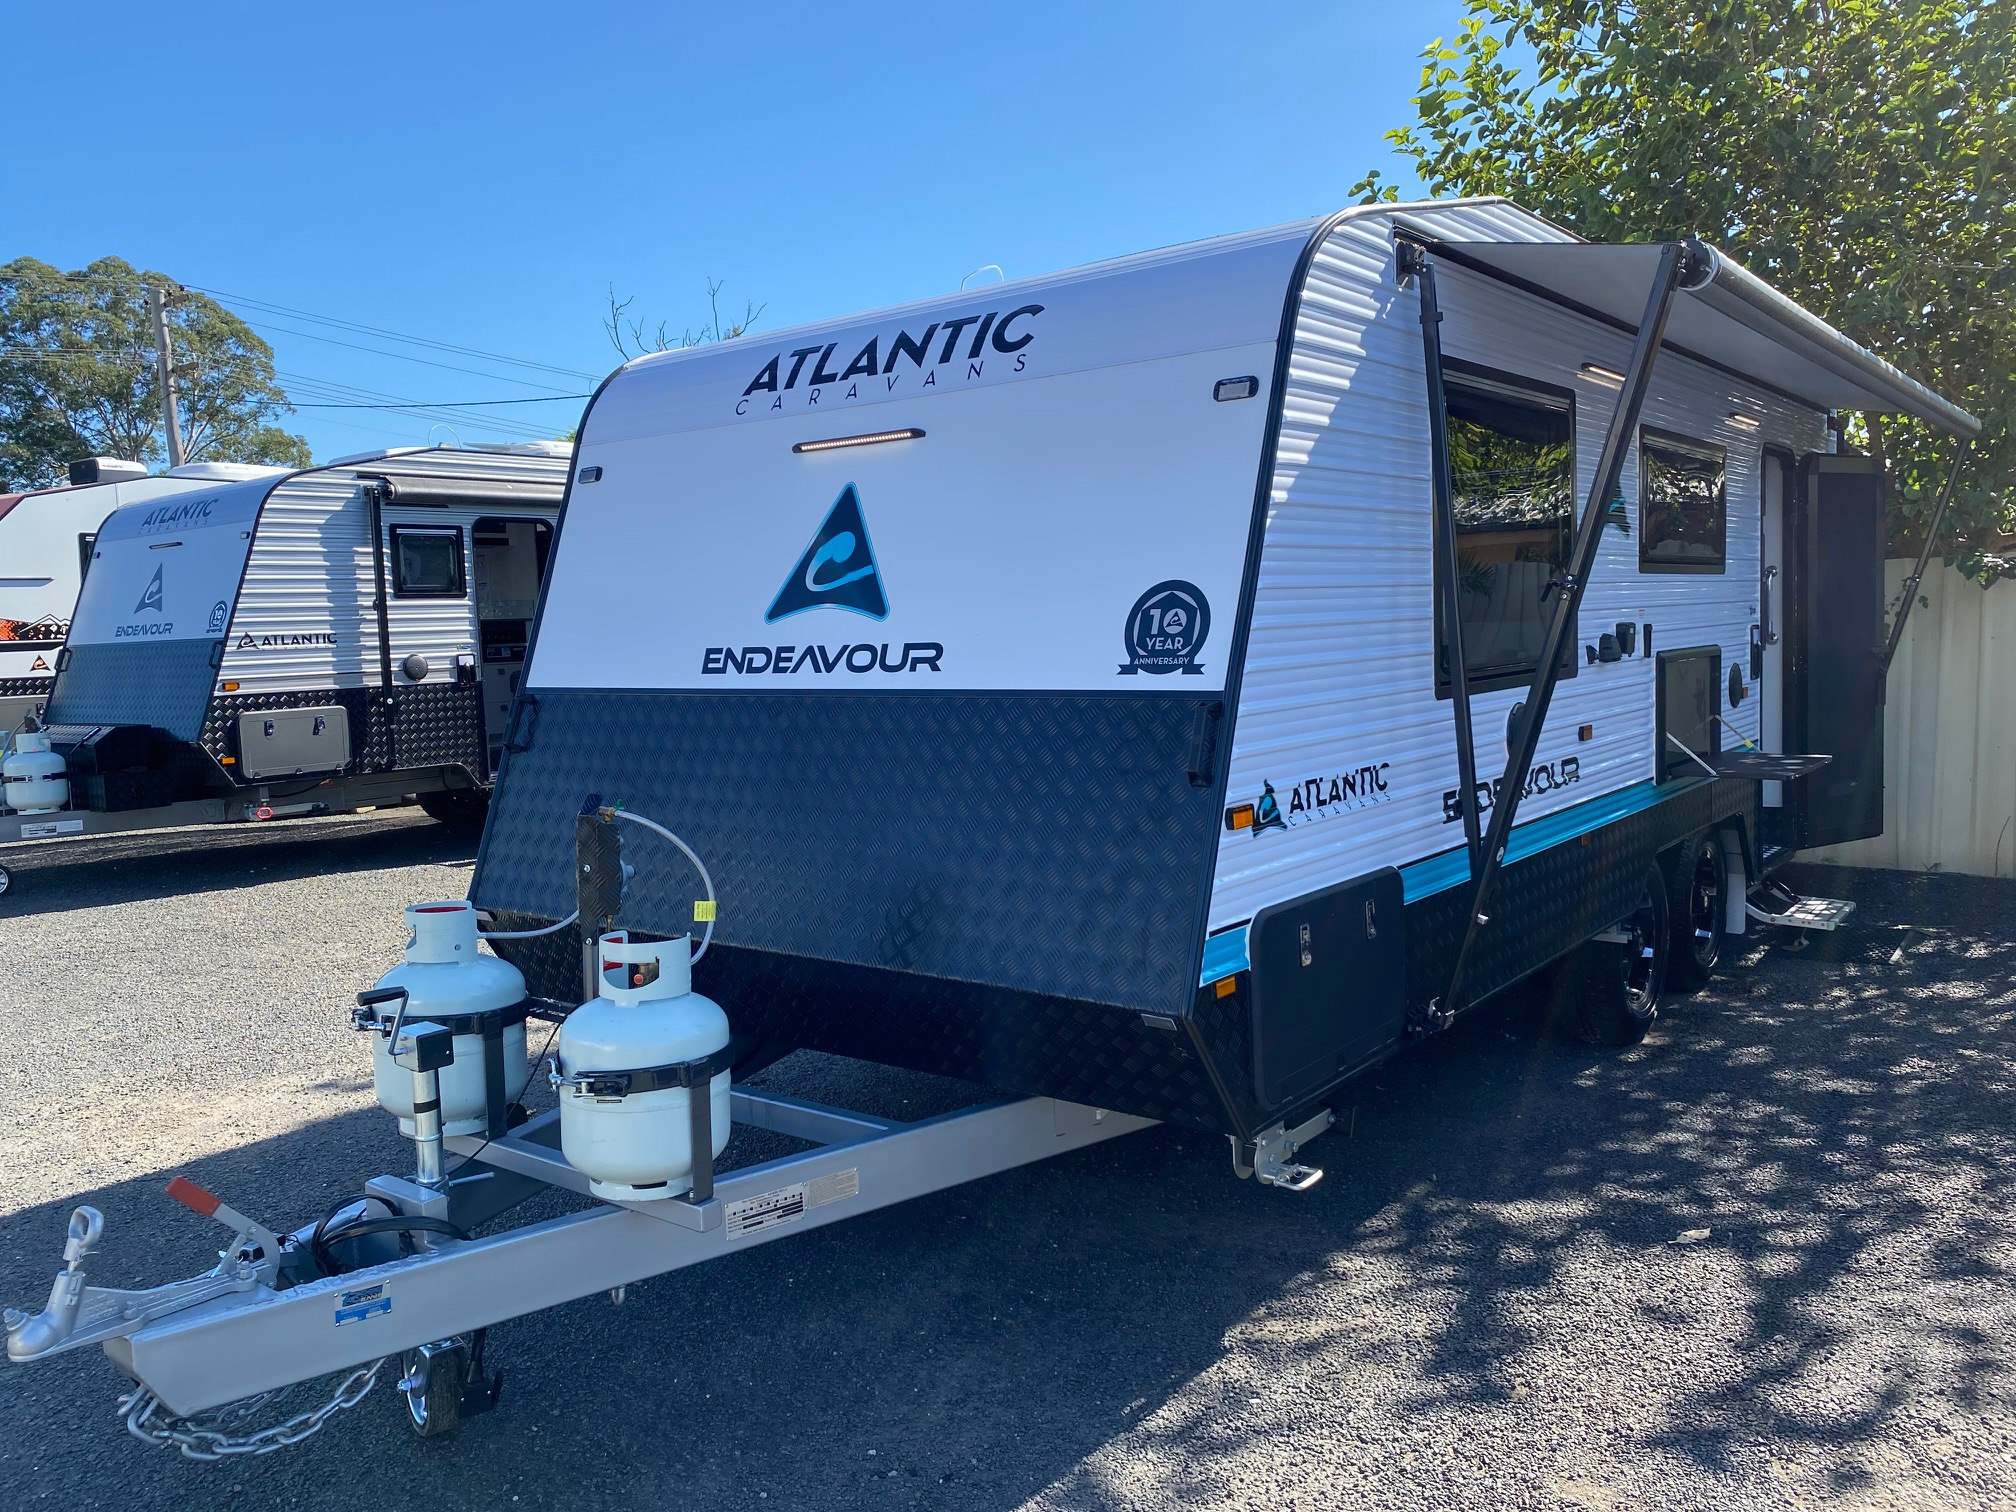 2021 ATLANTIC Endeavour 20' for sale in Windsor, NSW (ATL21099)